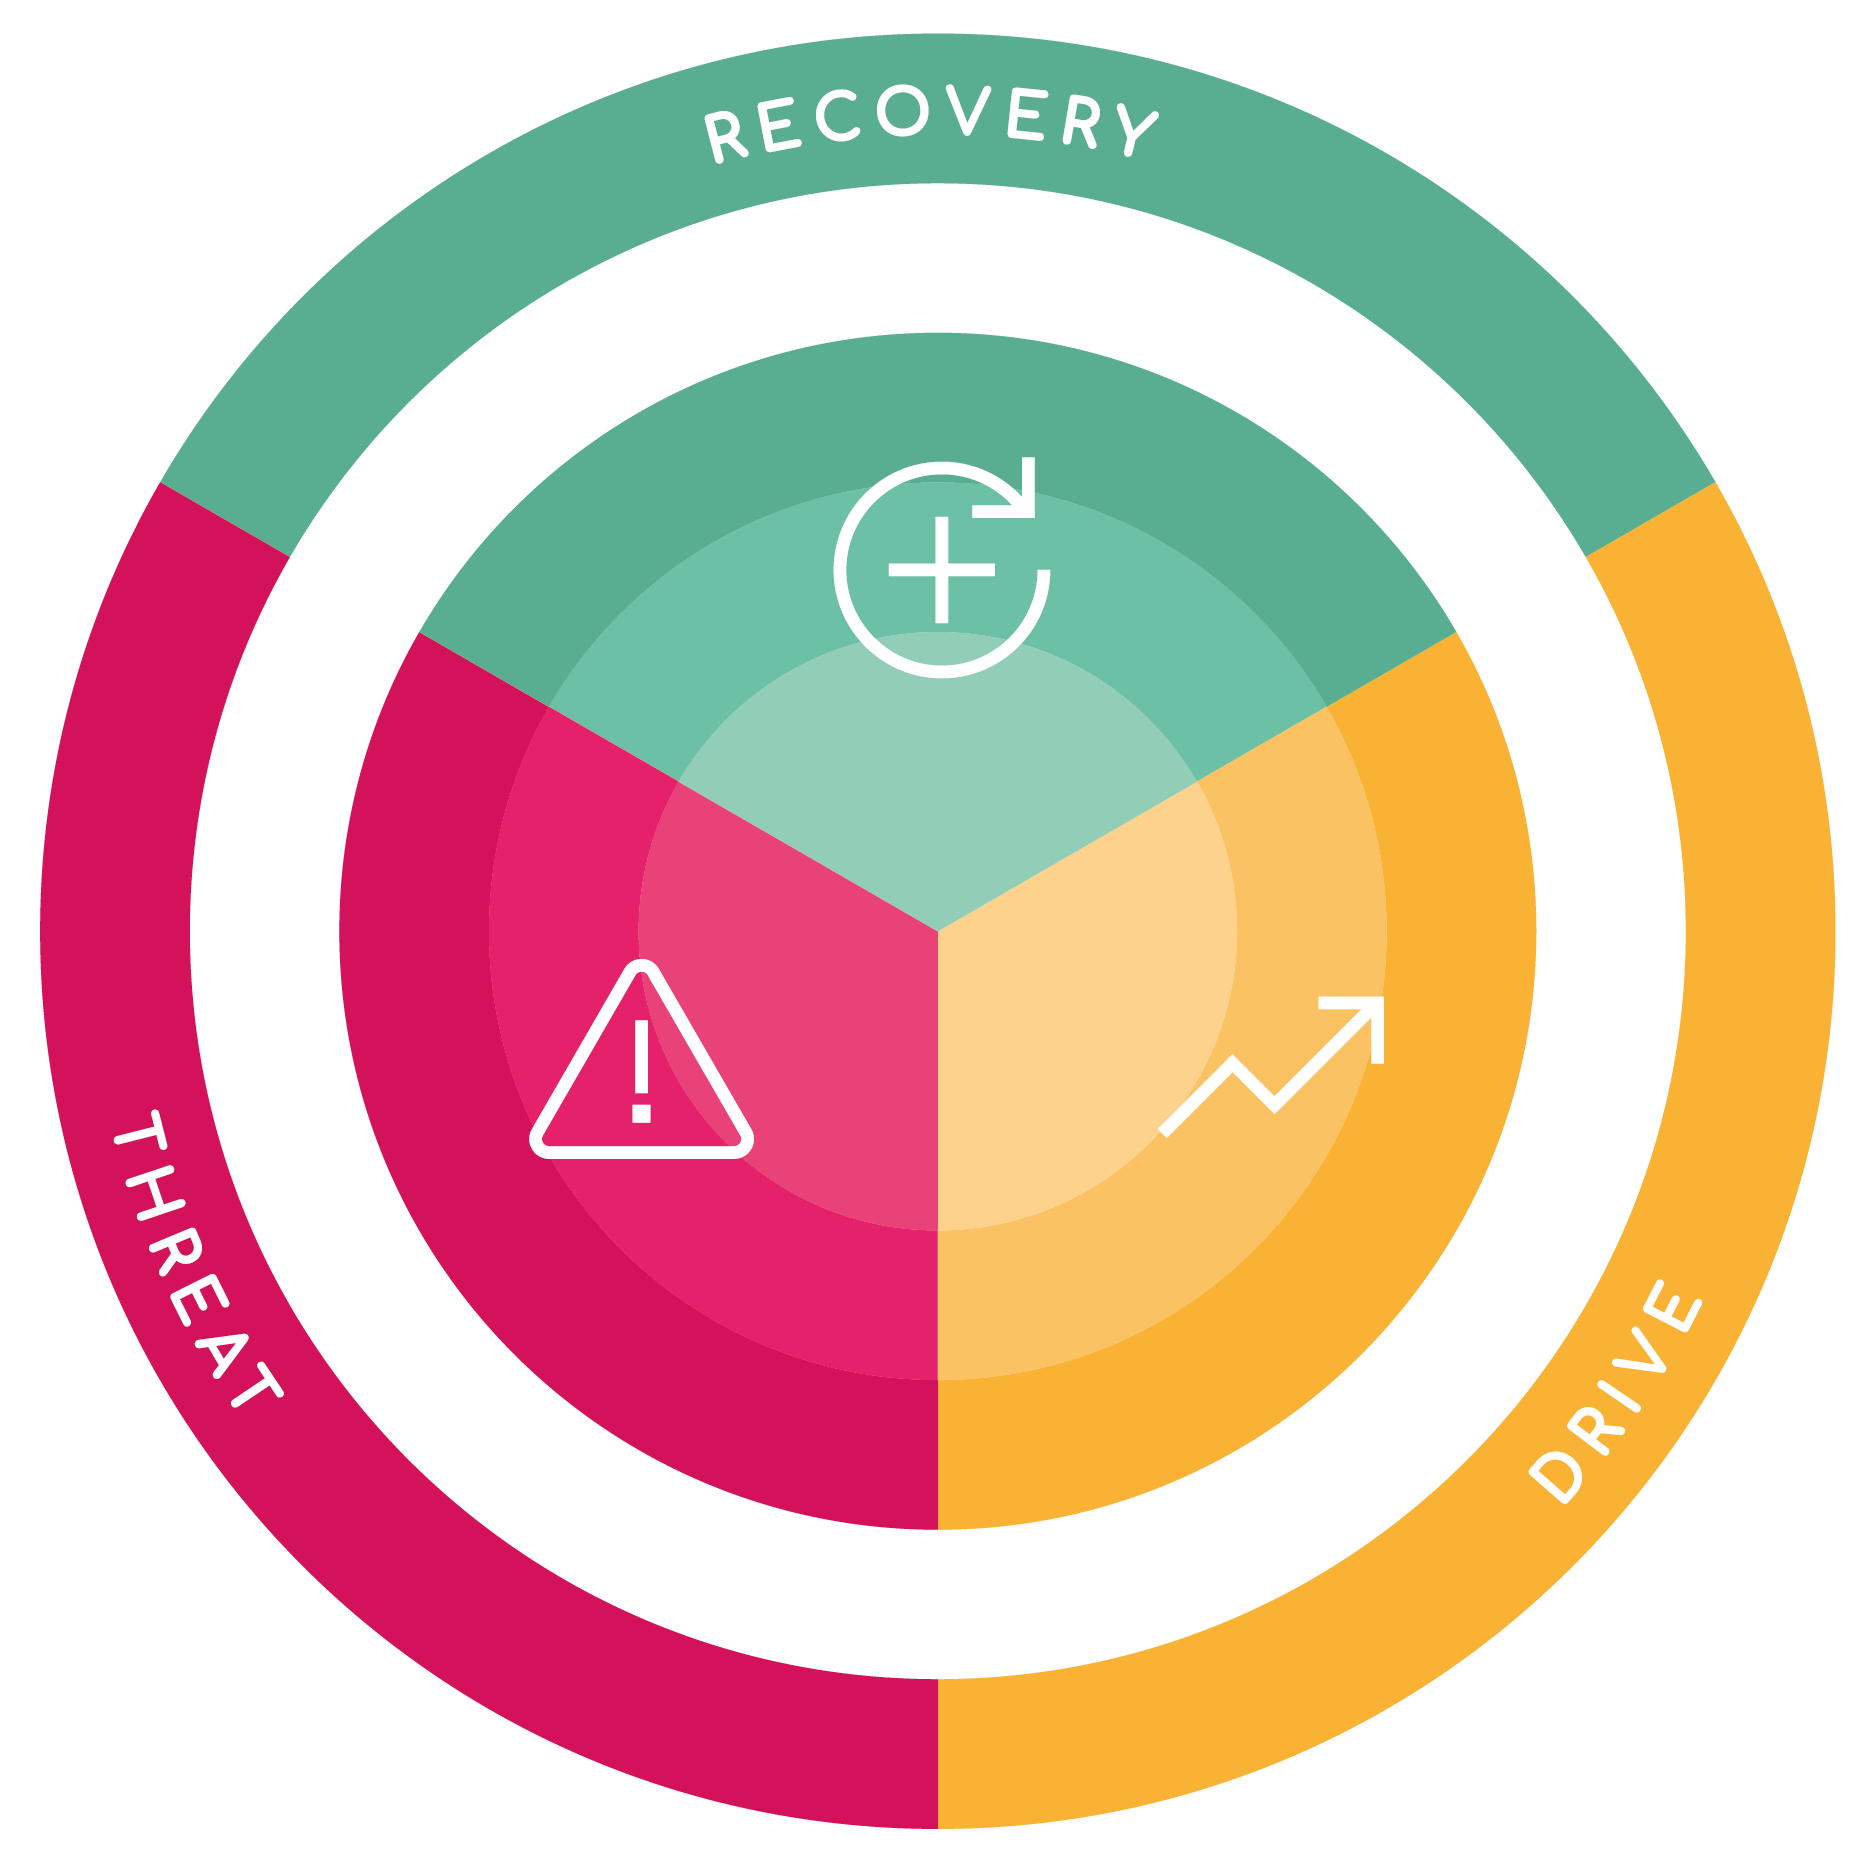 Our approach - Our clear and memorable methodology is founded in evidence-based psychology; it explains the intersection between wellbeing and performance, and underpins our coaching, therapy, training and consultancy.Learn More